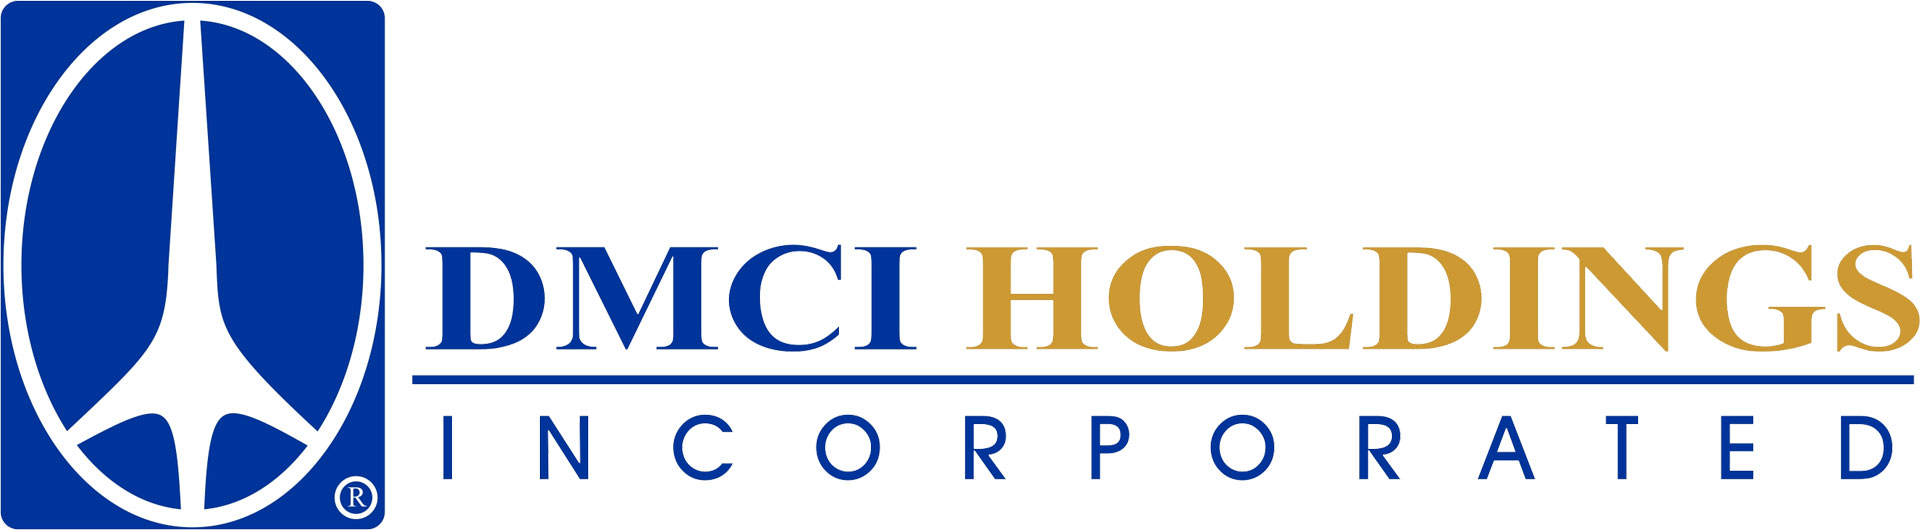 DMCI Holdings Incorporated